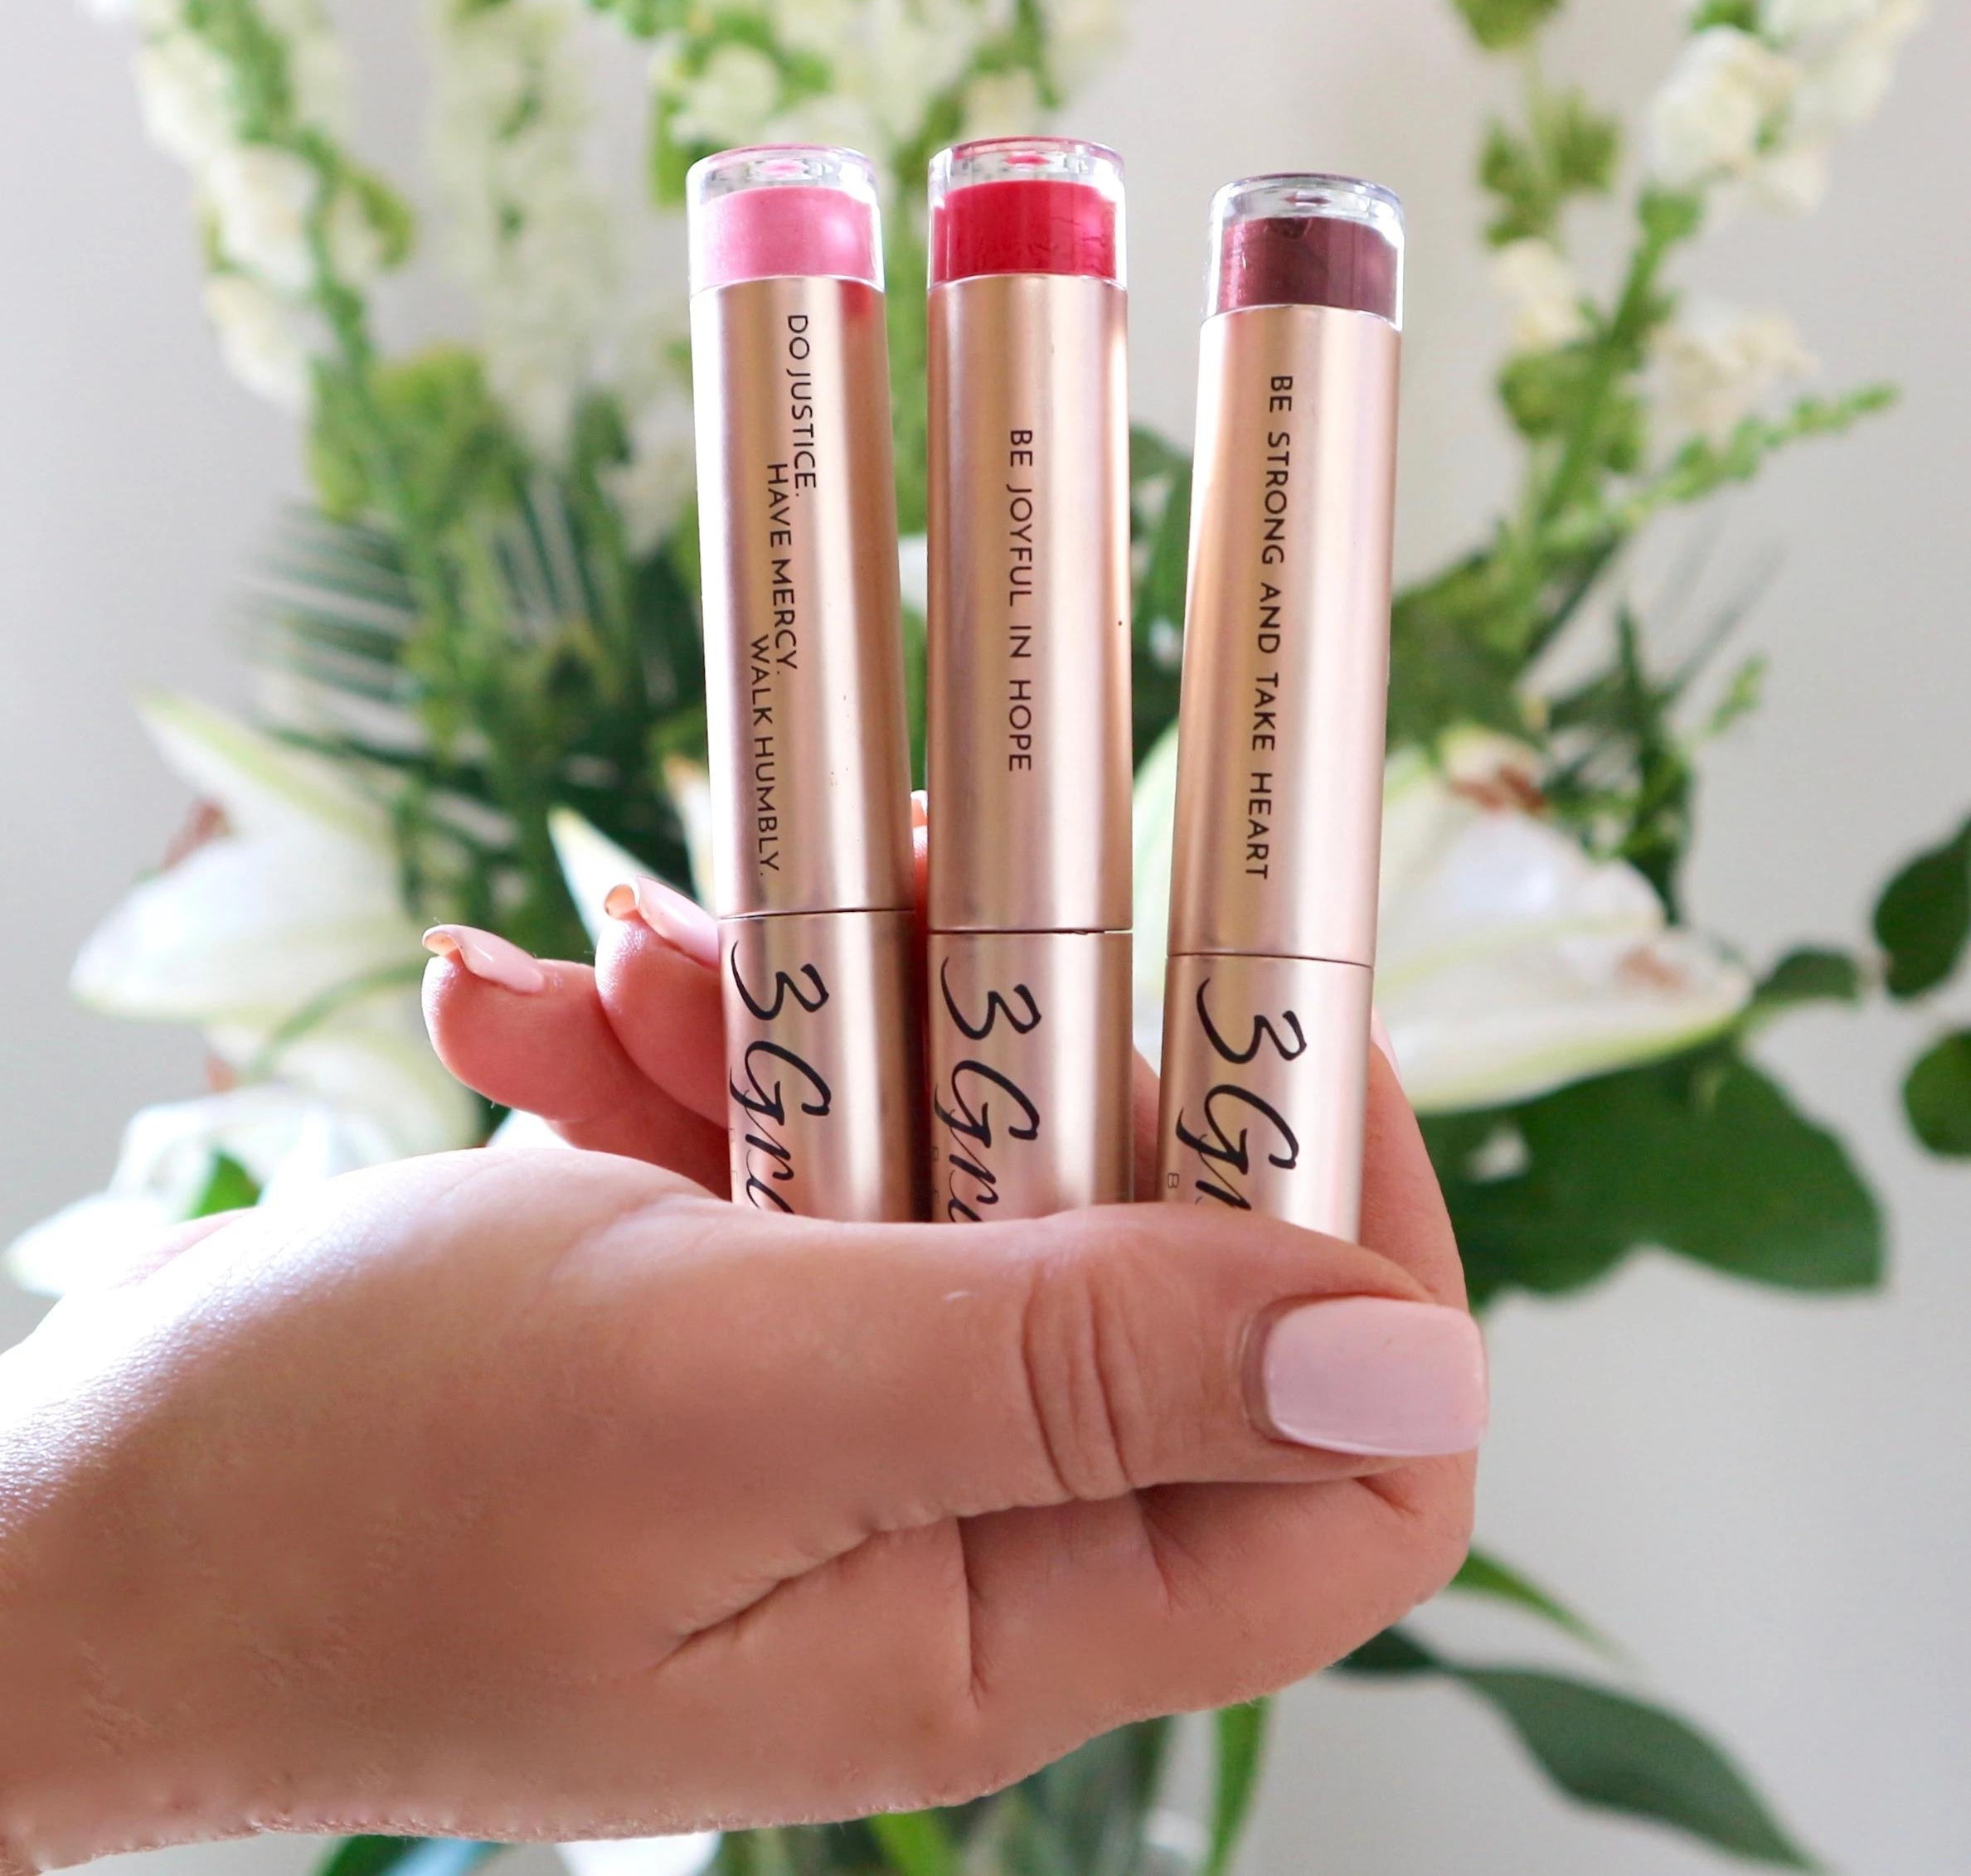 3 Graces Beauty Lipglosses held by a hand